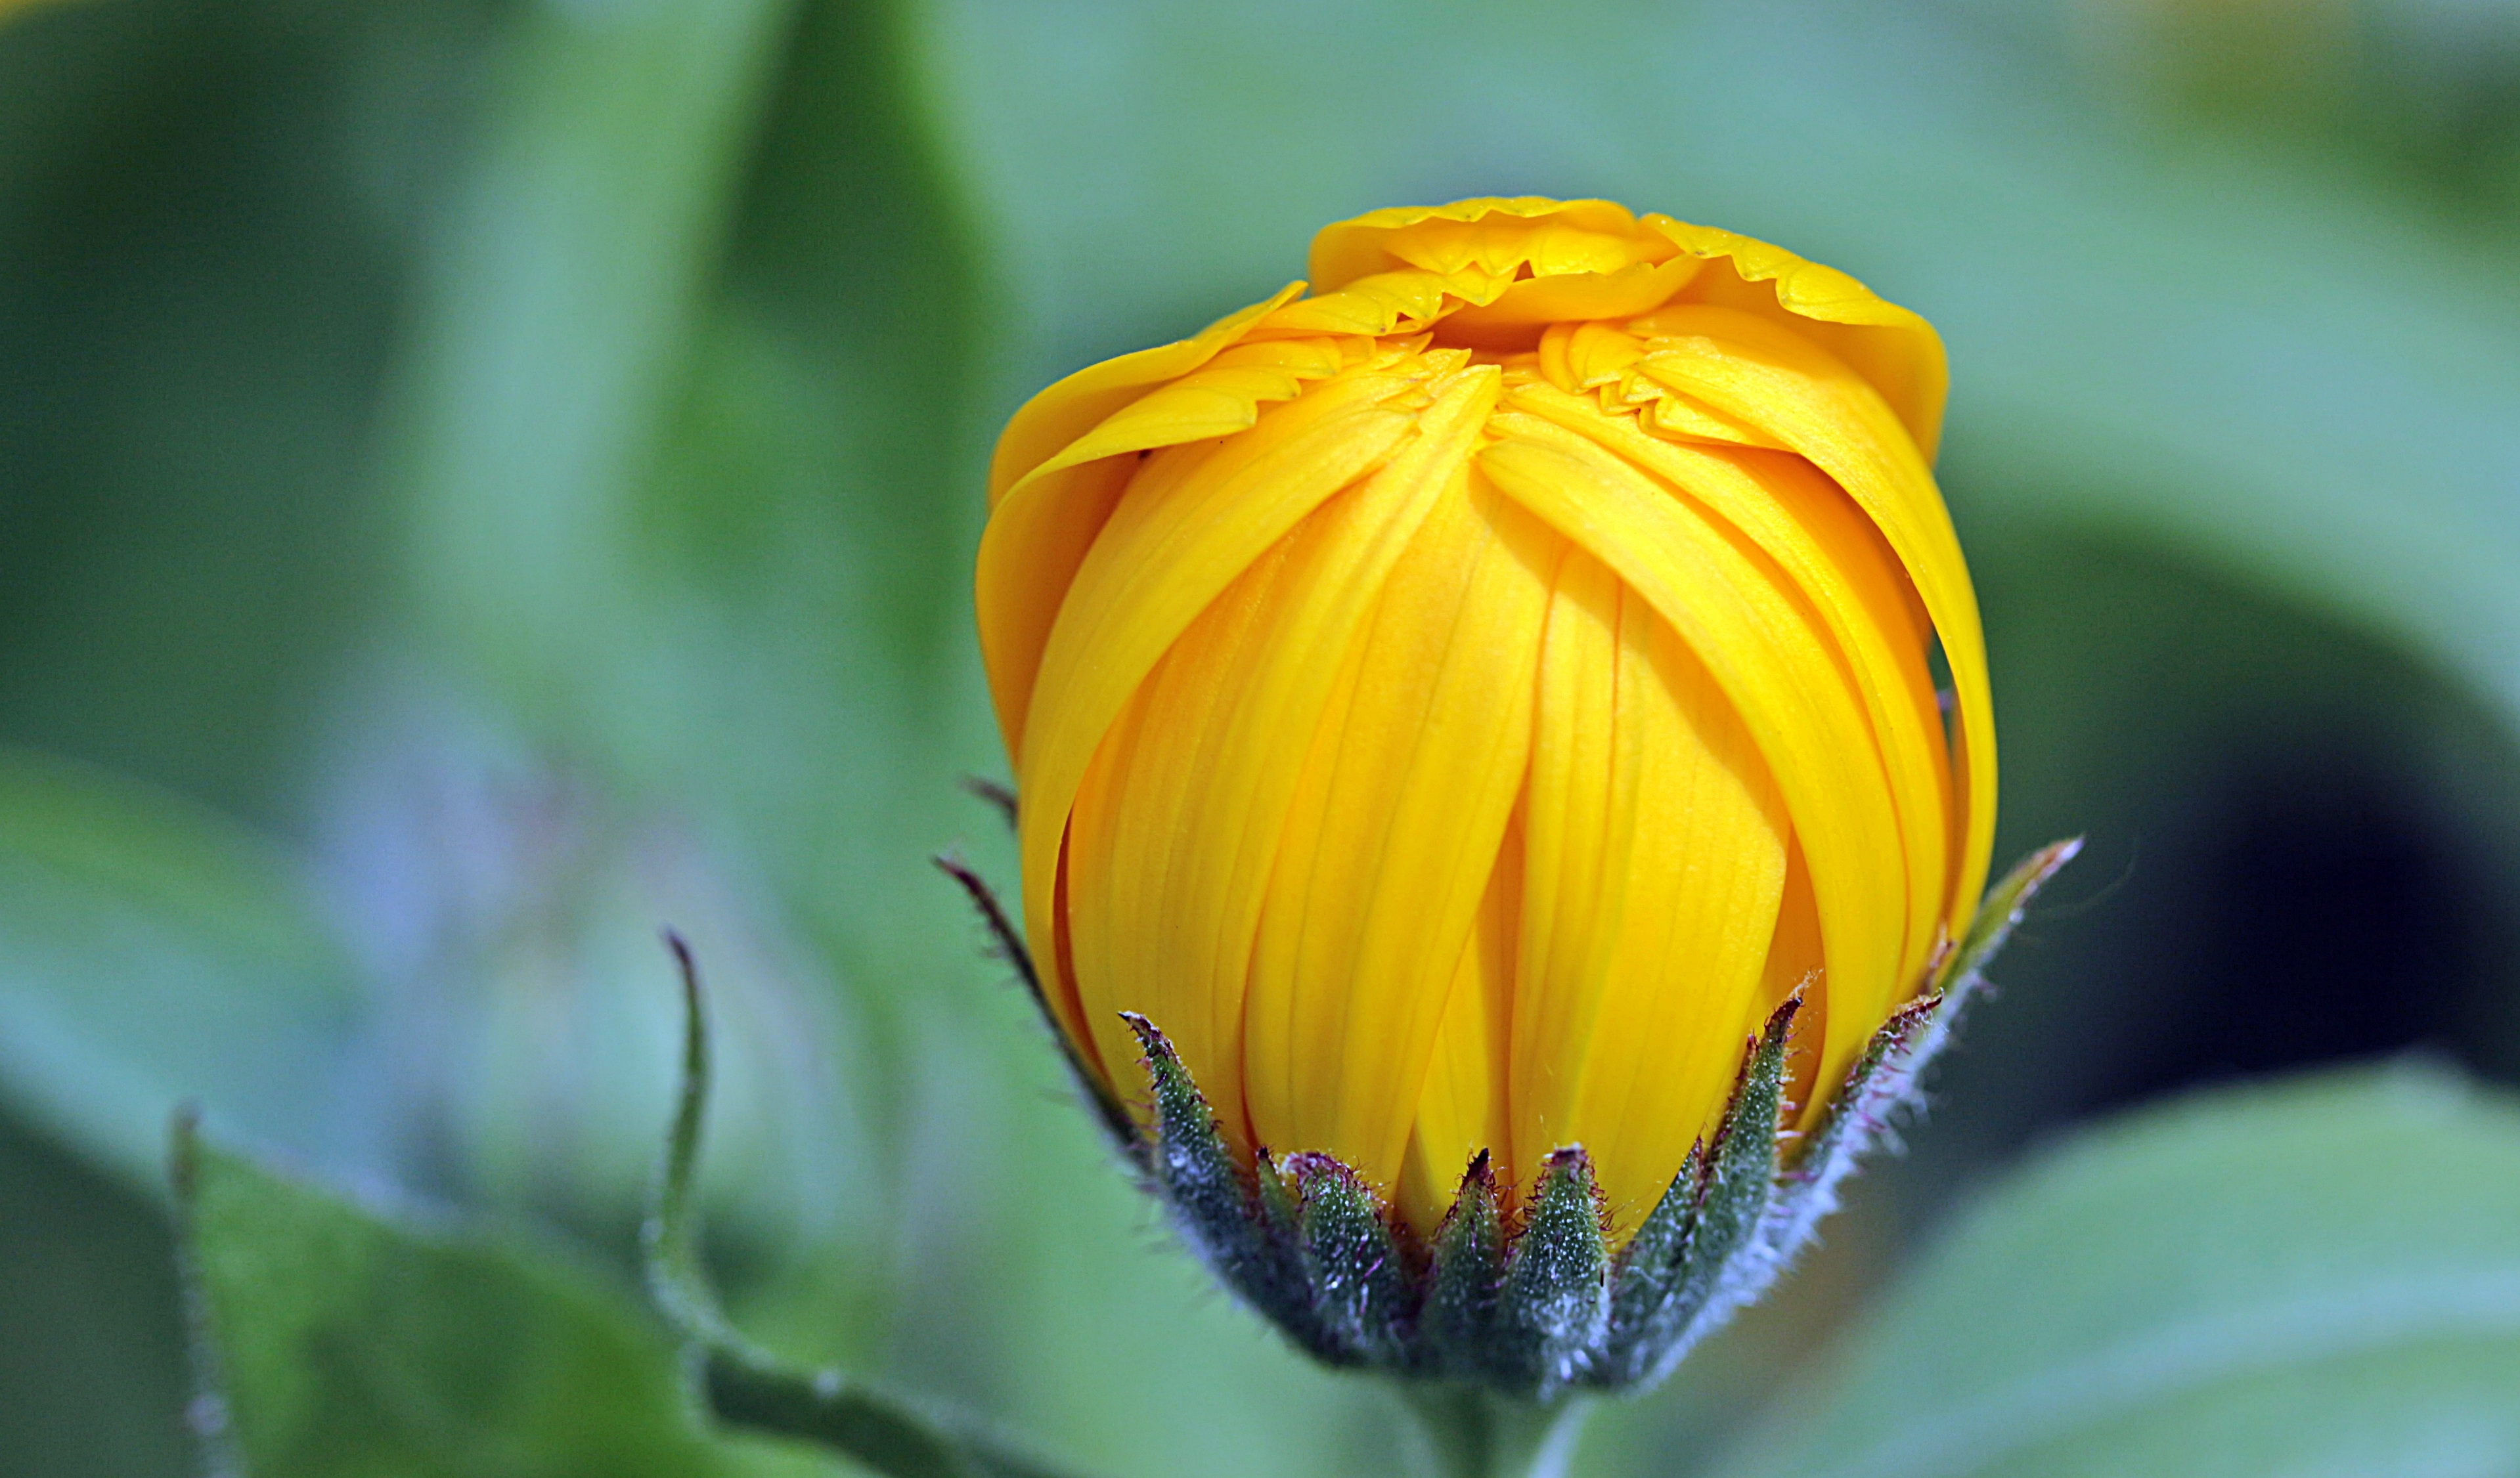 Yellow Flower Bud During Day Time 183 Free Stock Photo